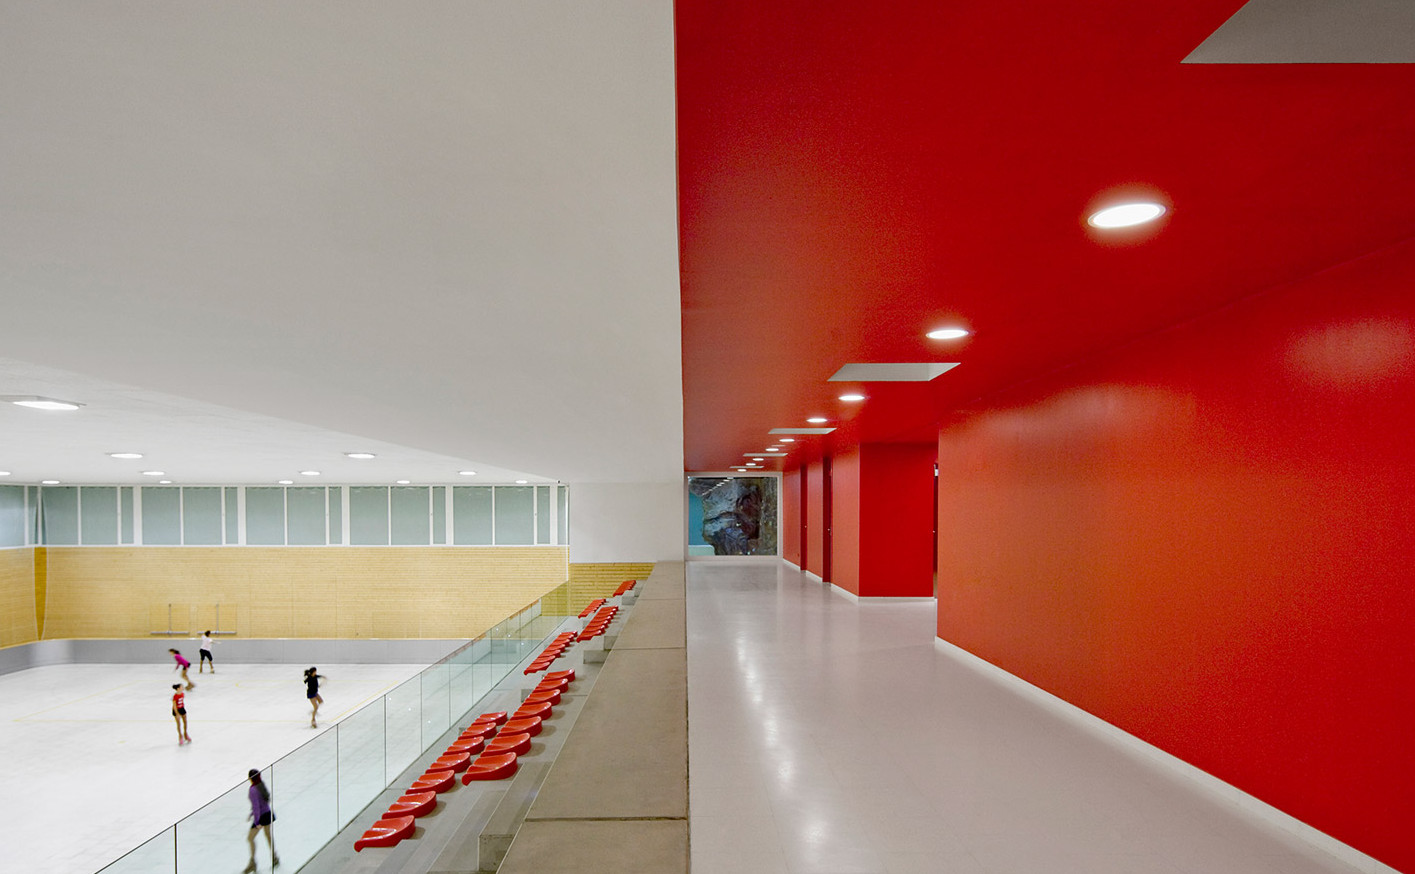 Municipal-Sports-Hall_Girona-Spain_BCQ_Baena-Casamor-Architects_polycarbonate_dezeen_1568_1